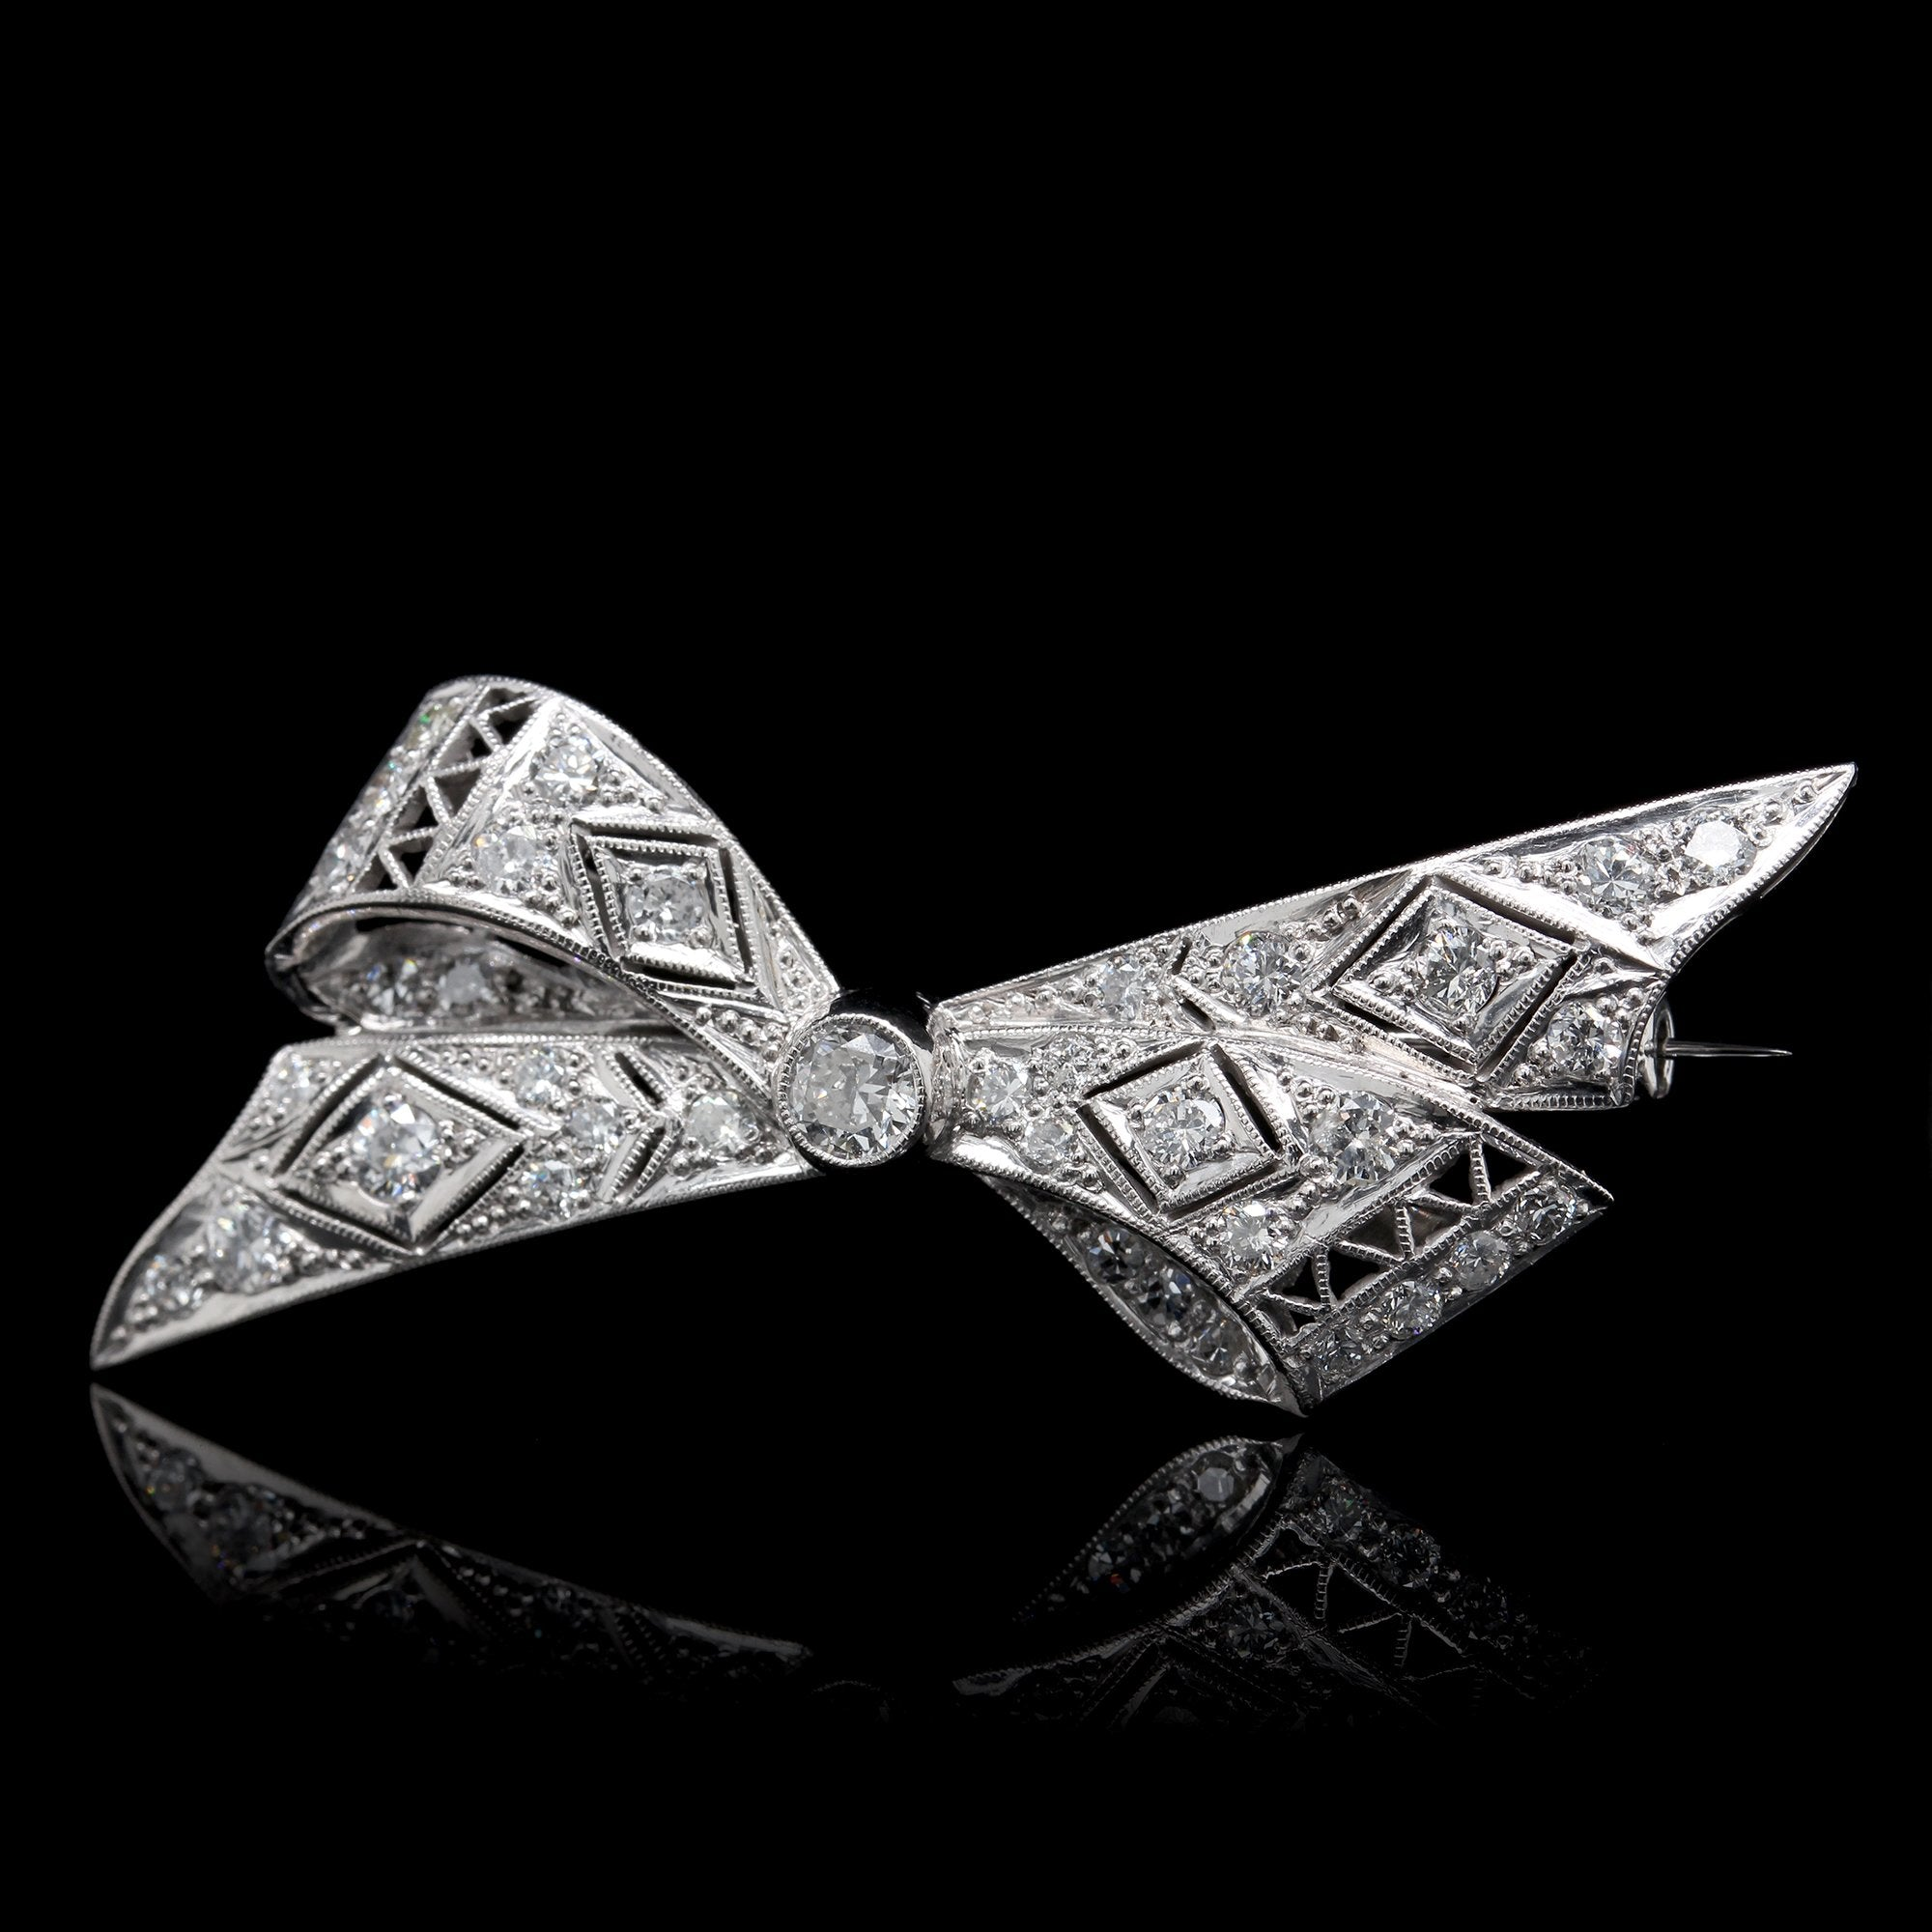 18K White Gold Estate Vintage Style Diamond Bow Pin